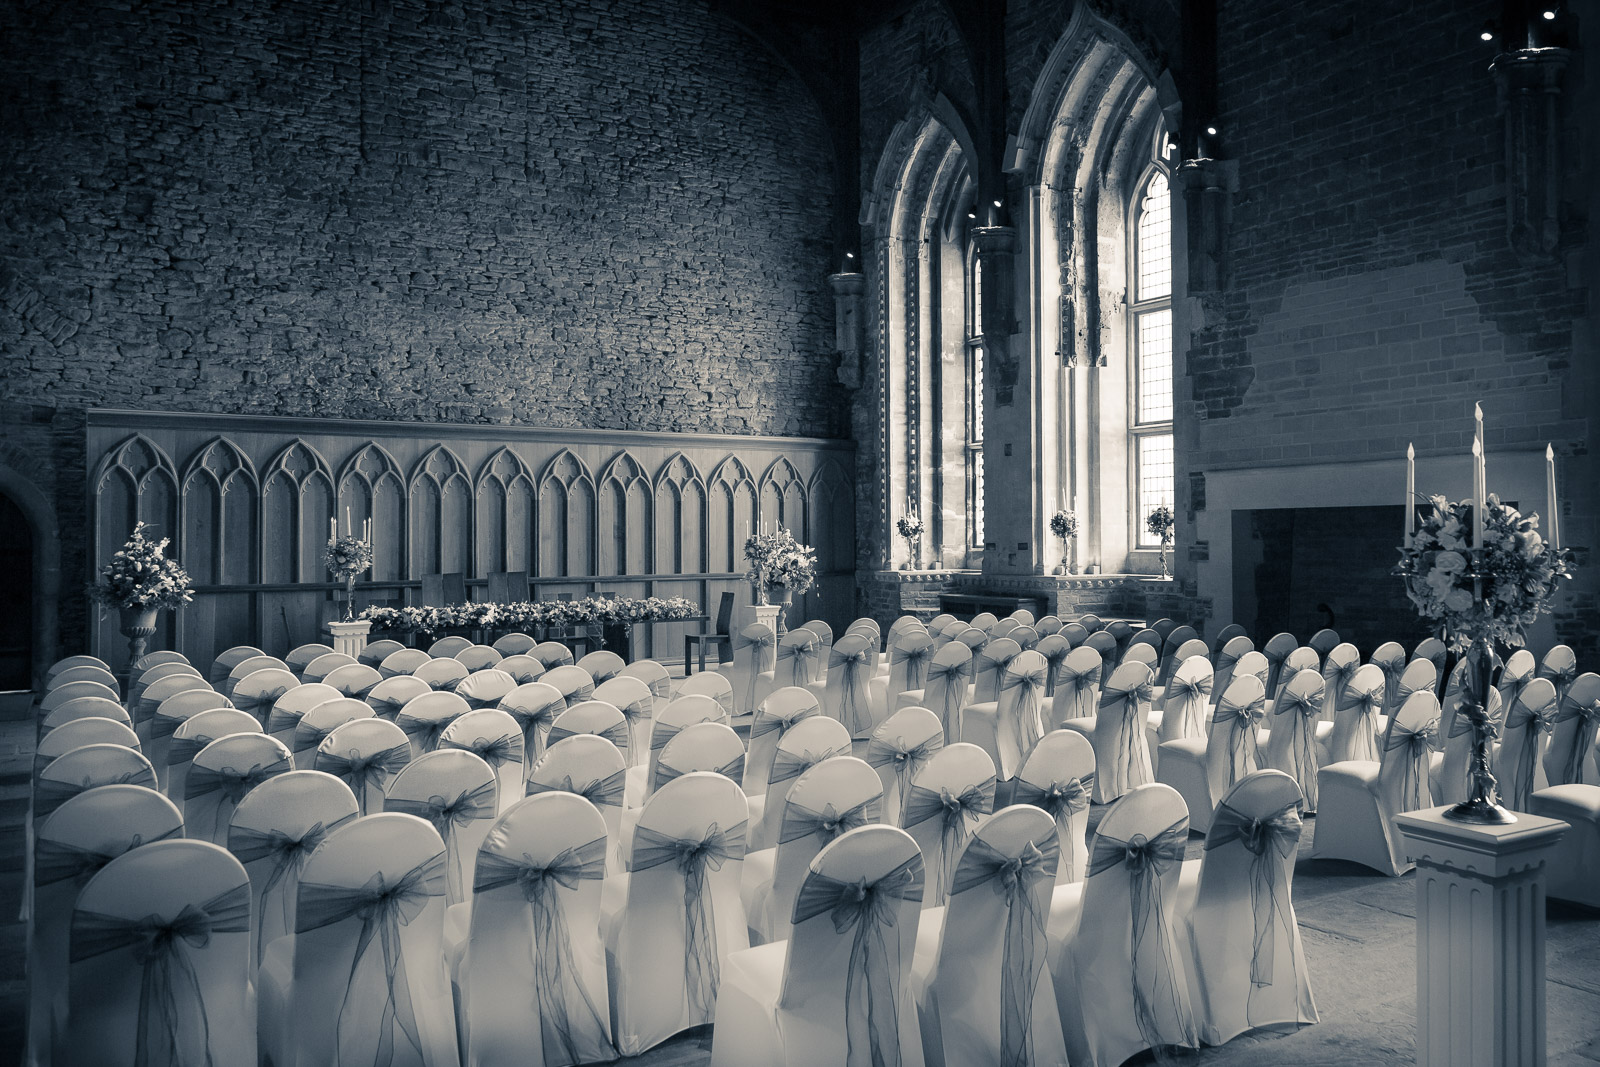 South Wales Wedding at the Great Hall, Caerphilly Castle